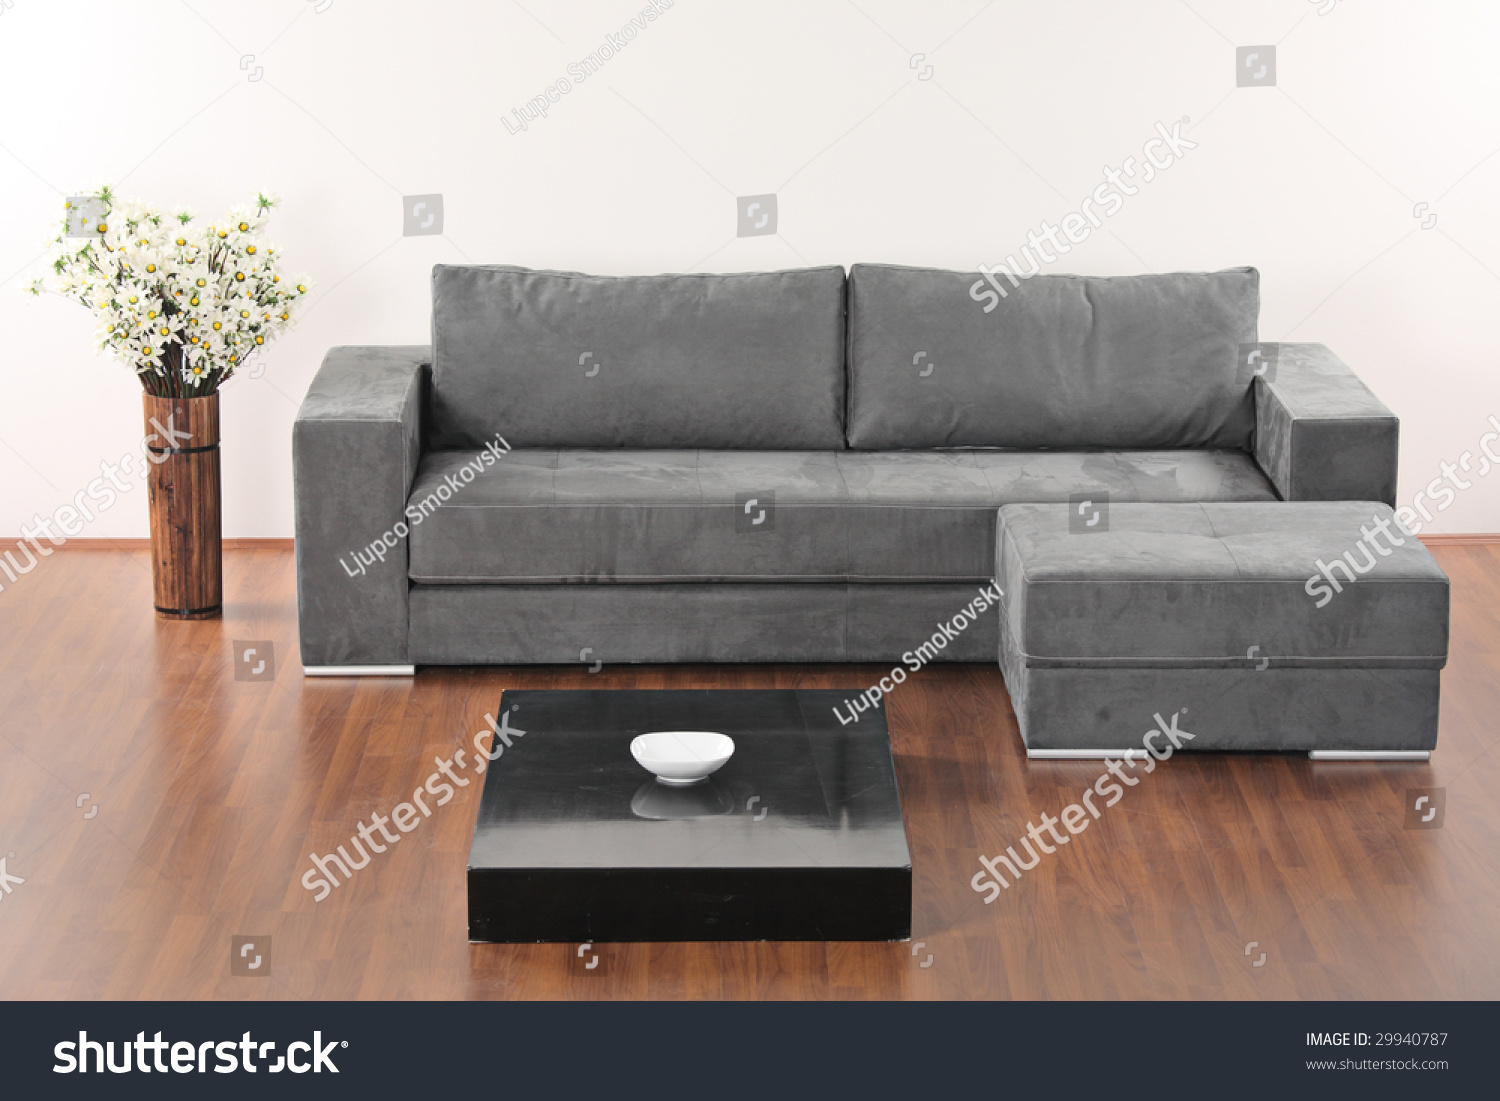 A Modern Minimalist Living Room With Grey Furniture Stock Photo 29940787 Shutterstock